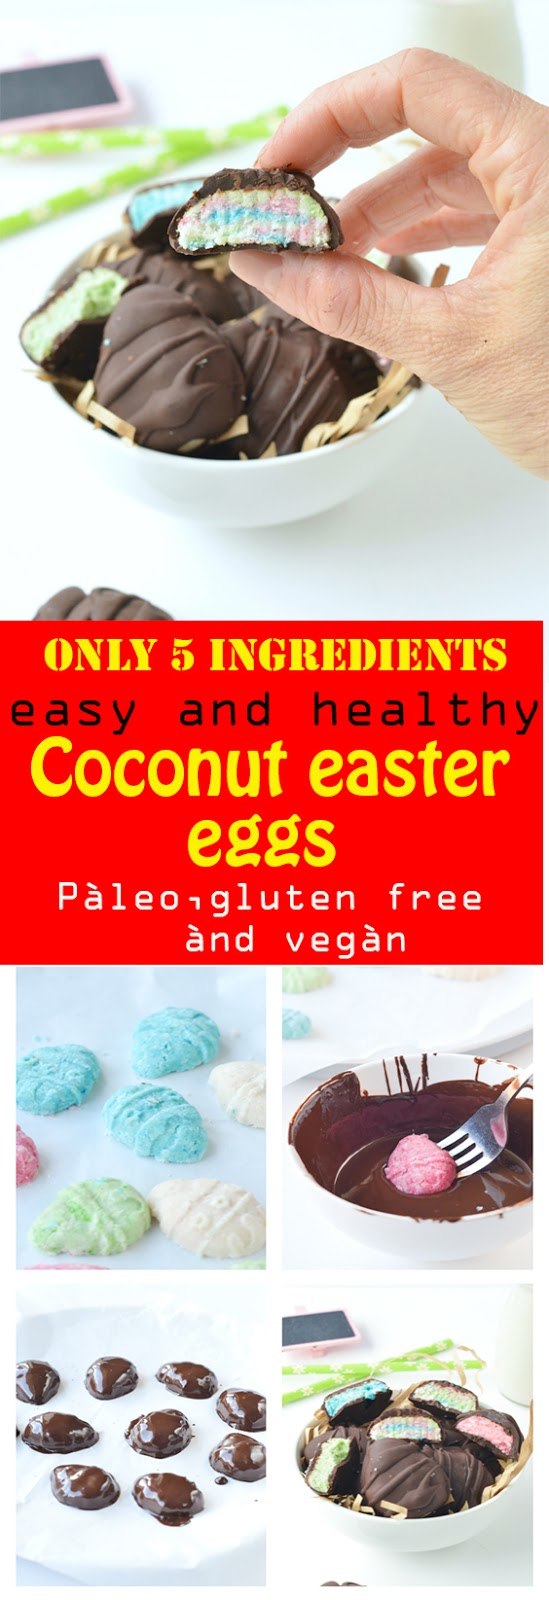 coconut easter eggs